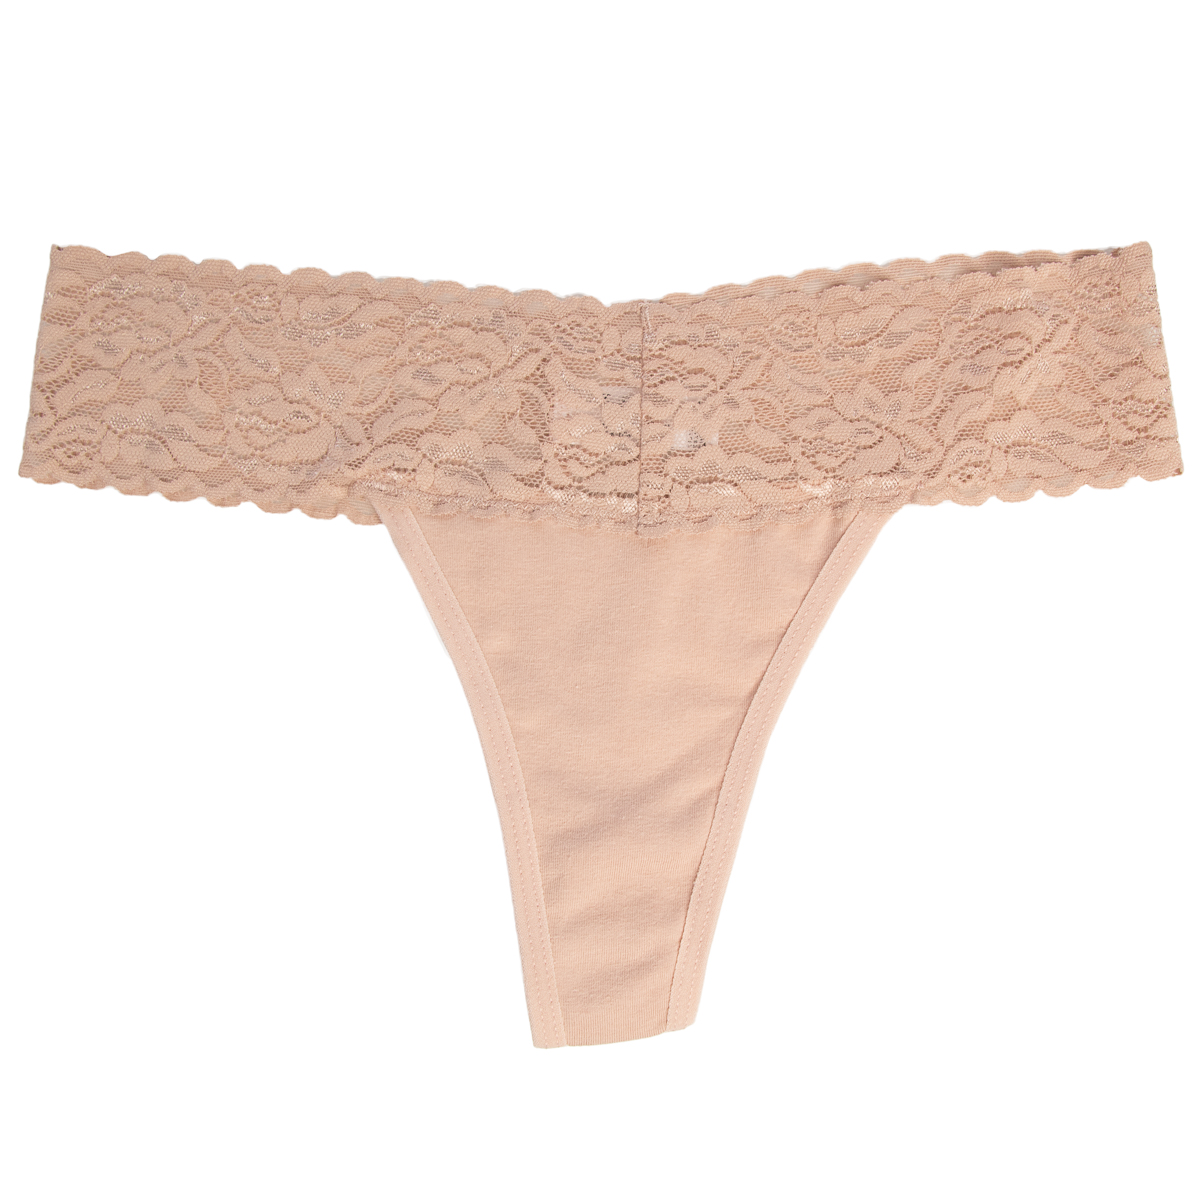 6-Pack-Cotton-Lace-Thong-Underwear-For-Women-Soft-Sexy-Lingerie-Panties-Thongs thumbnail 28